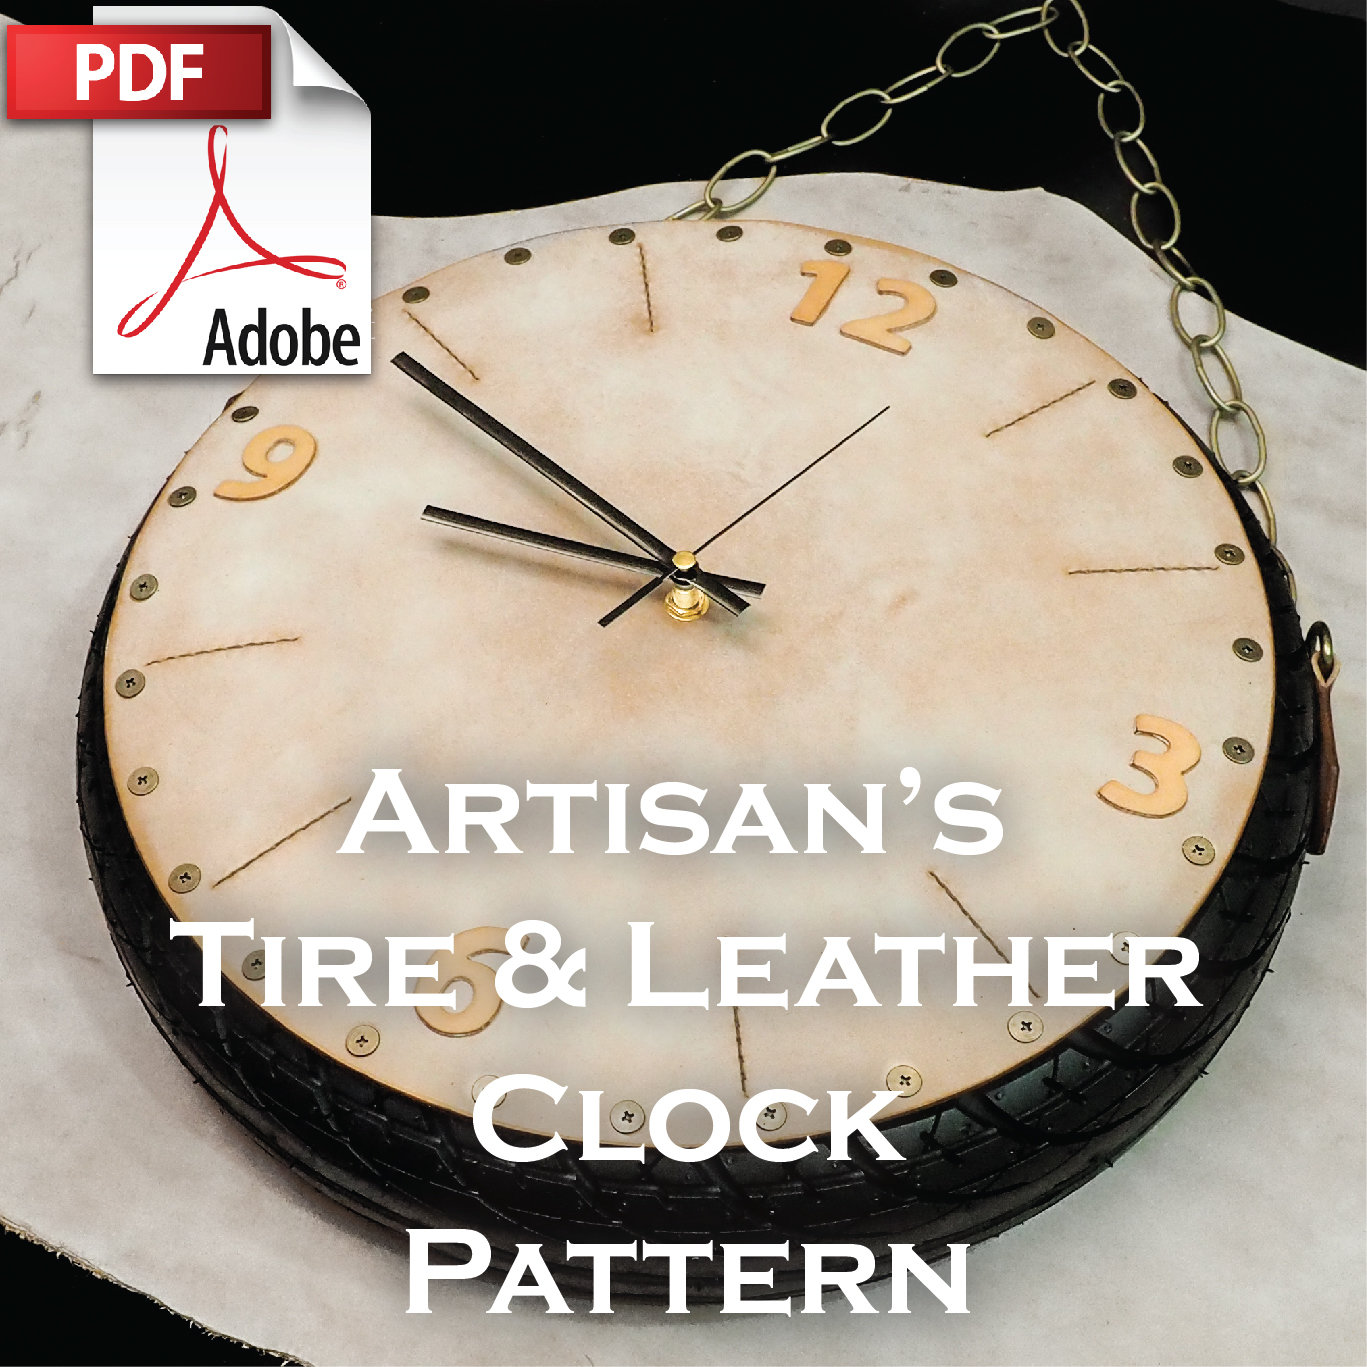 Artisan's Tire & Leather Clock Pattern